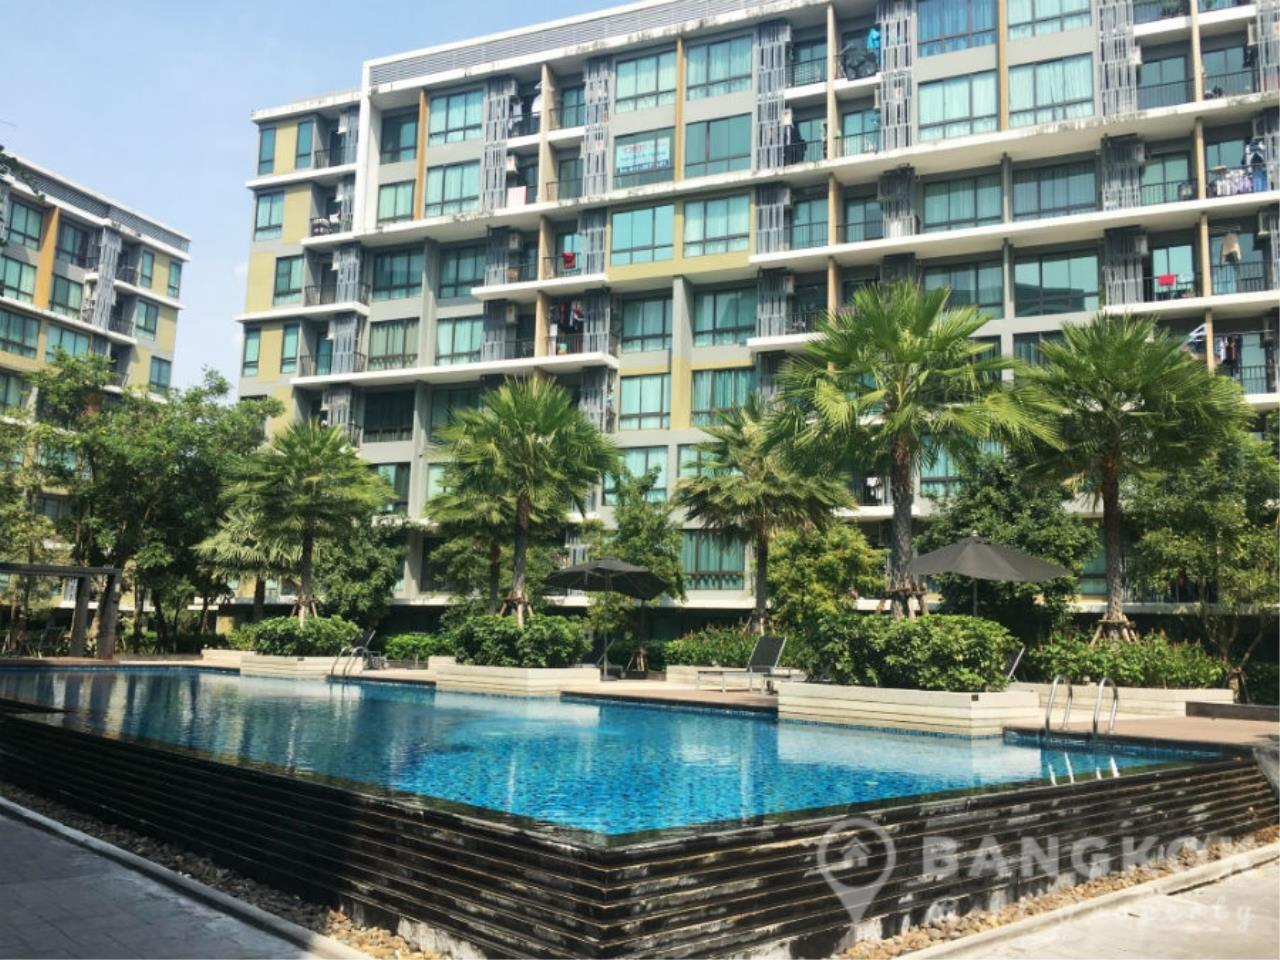 Bangkok Real Property Agency's ICondo Sukhumvit 103 | Modern 1 Bed 1 Bath with Garden View in Udomsuk 1